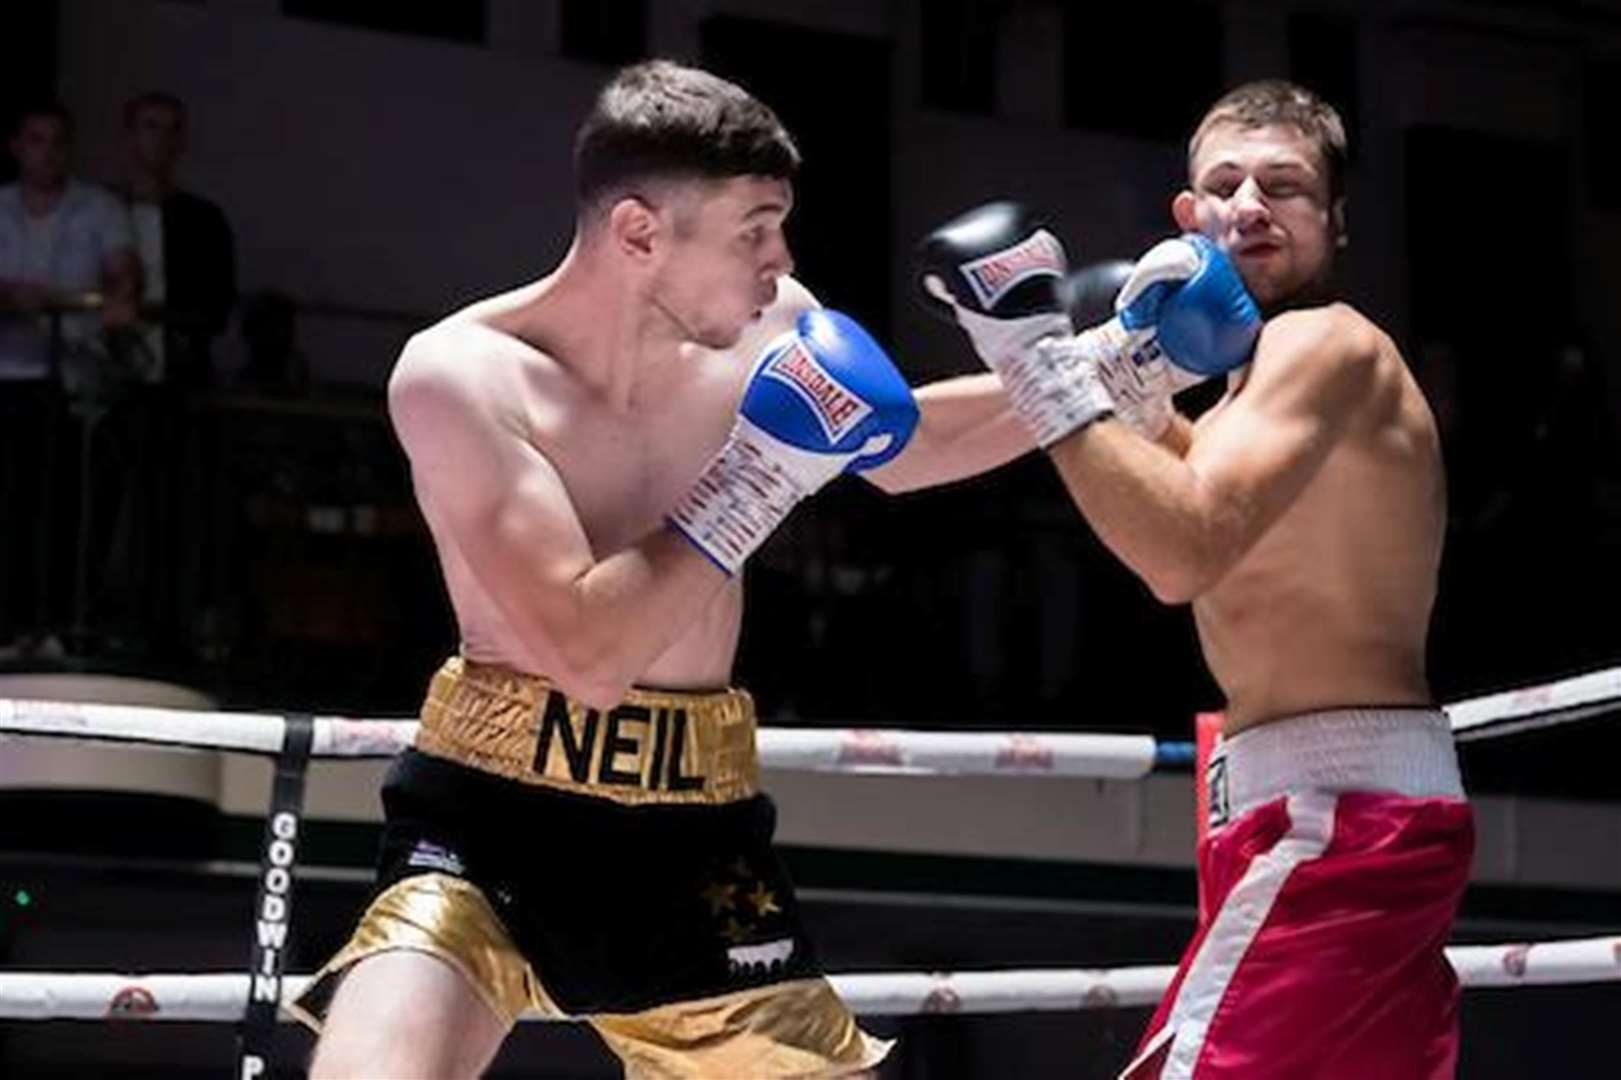 Neil Parry fighting Teodor Boyadjiev in September 2018. Goodwin Boxing. Picture: Simon Downing